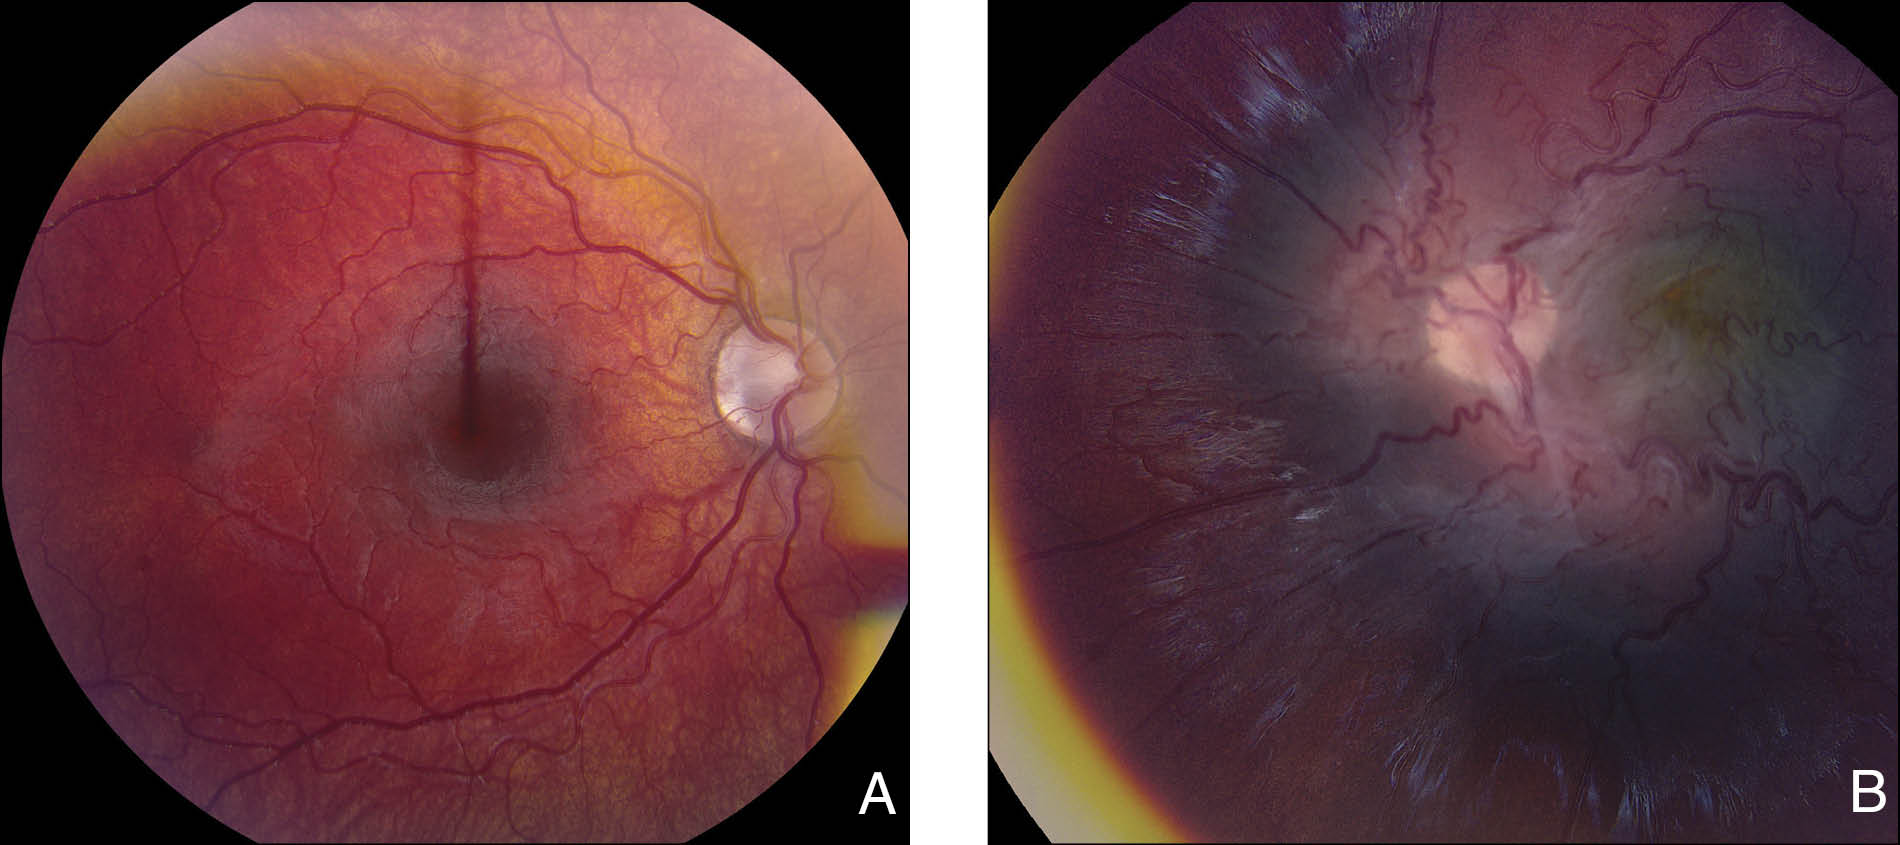 Fundus photography of (A) the right eye at 46 months within normal limits and (B) the left eye at 46 months showing the central area of the retinal traction and fibrosis in the posterior pole with vascular tortuosity.